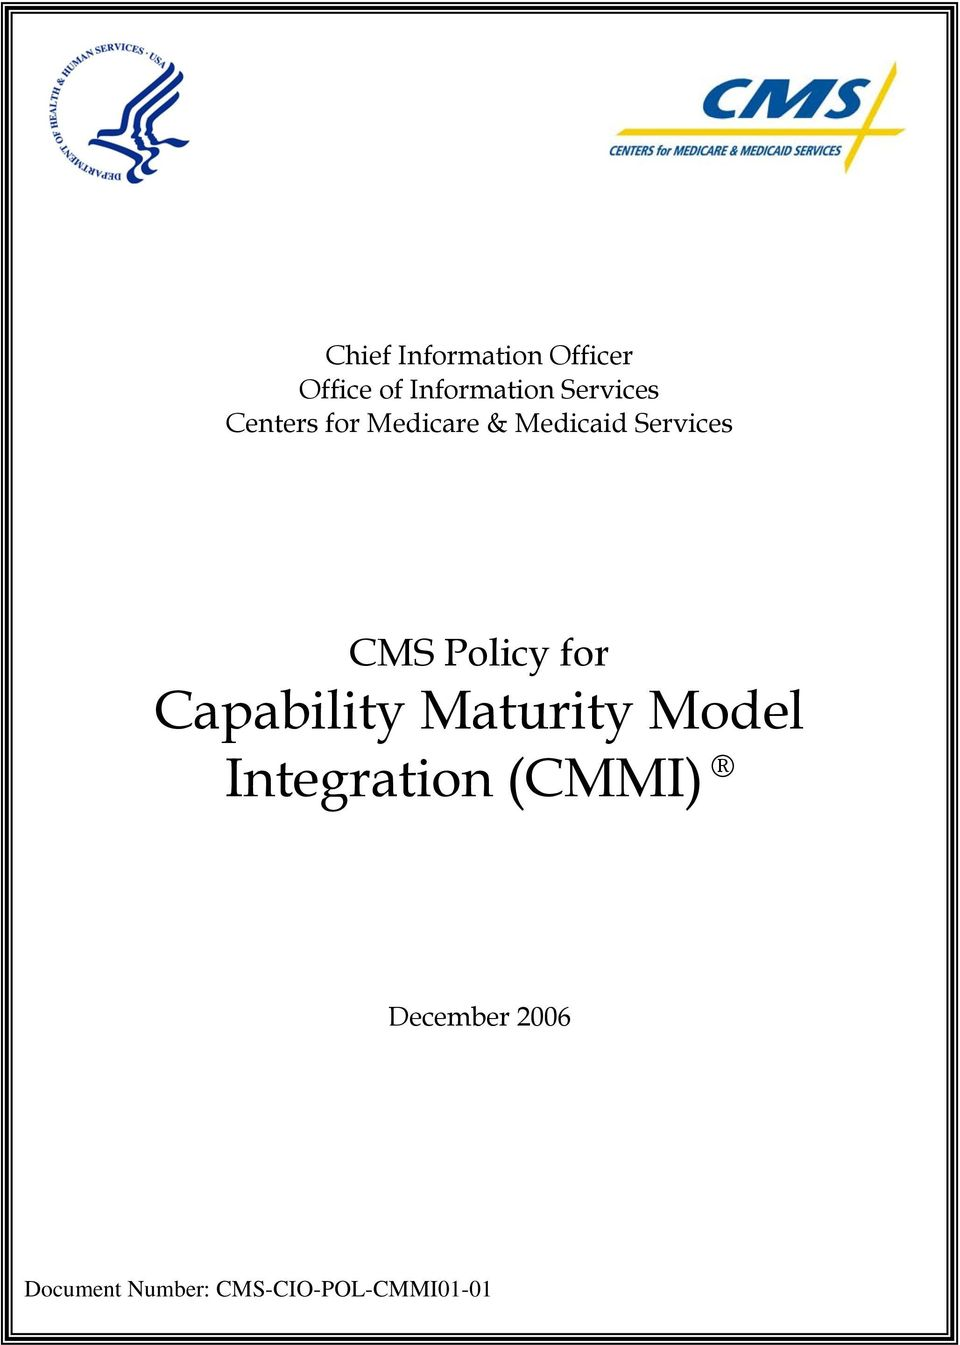 CMS Policy for Capability Maturity Model Integration